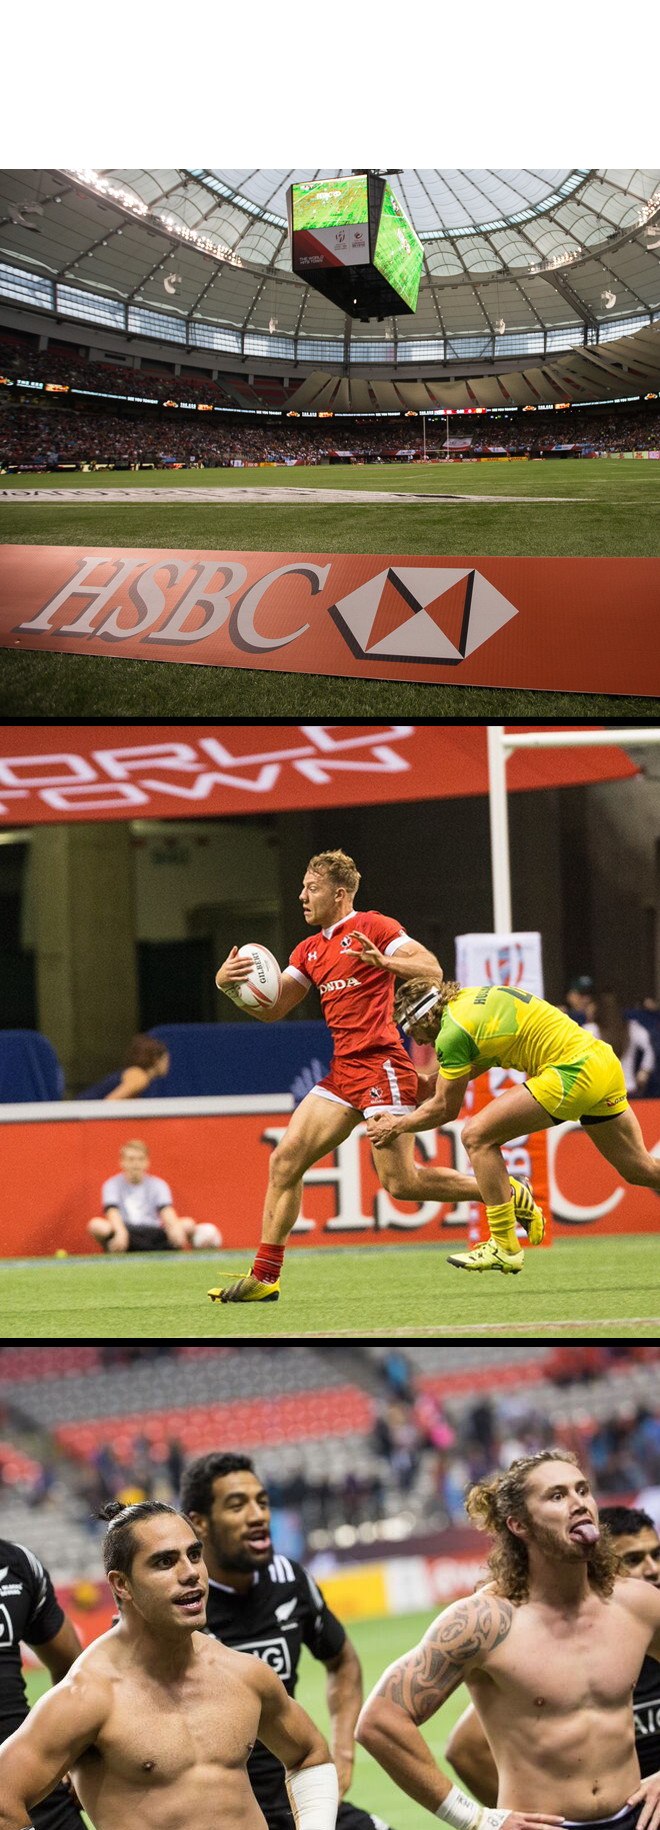 HSBC World Rugby Sevens Series Tournament at BC Place Stadium Vancouver